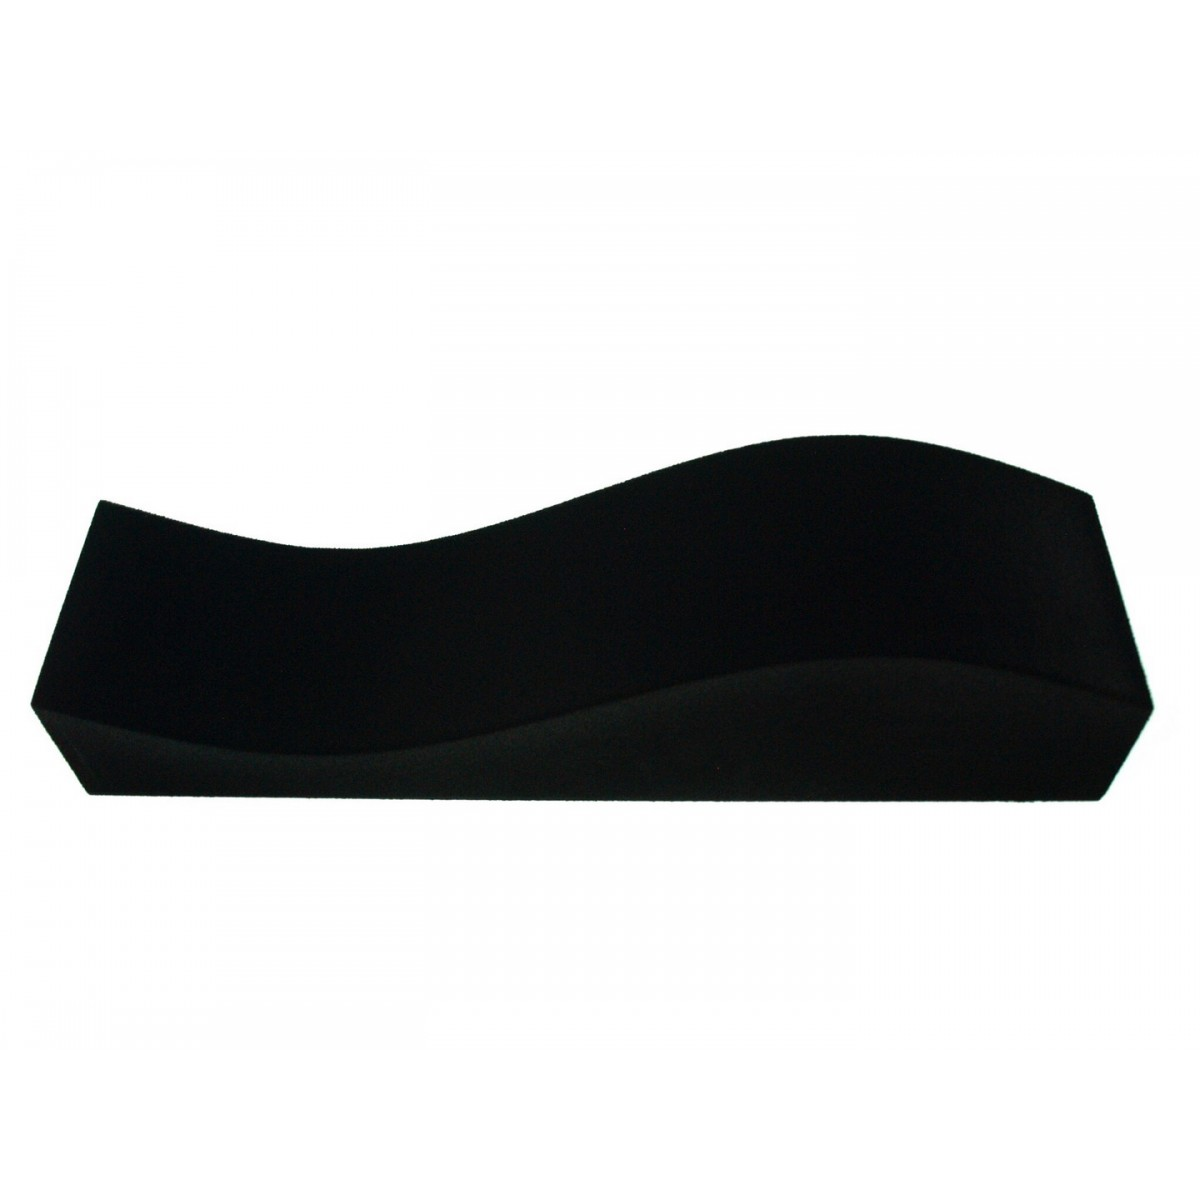 EliAcoustic Surf Premiere Black